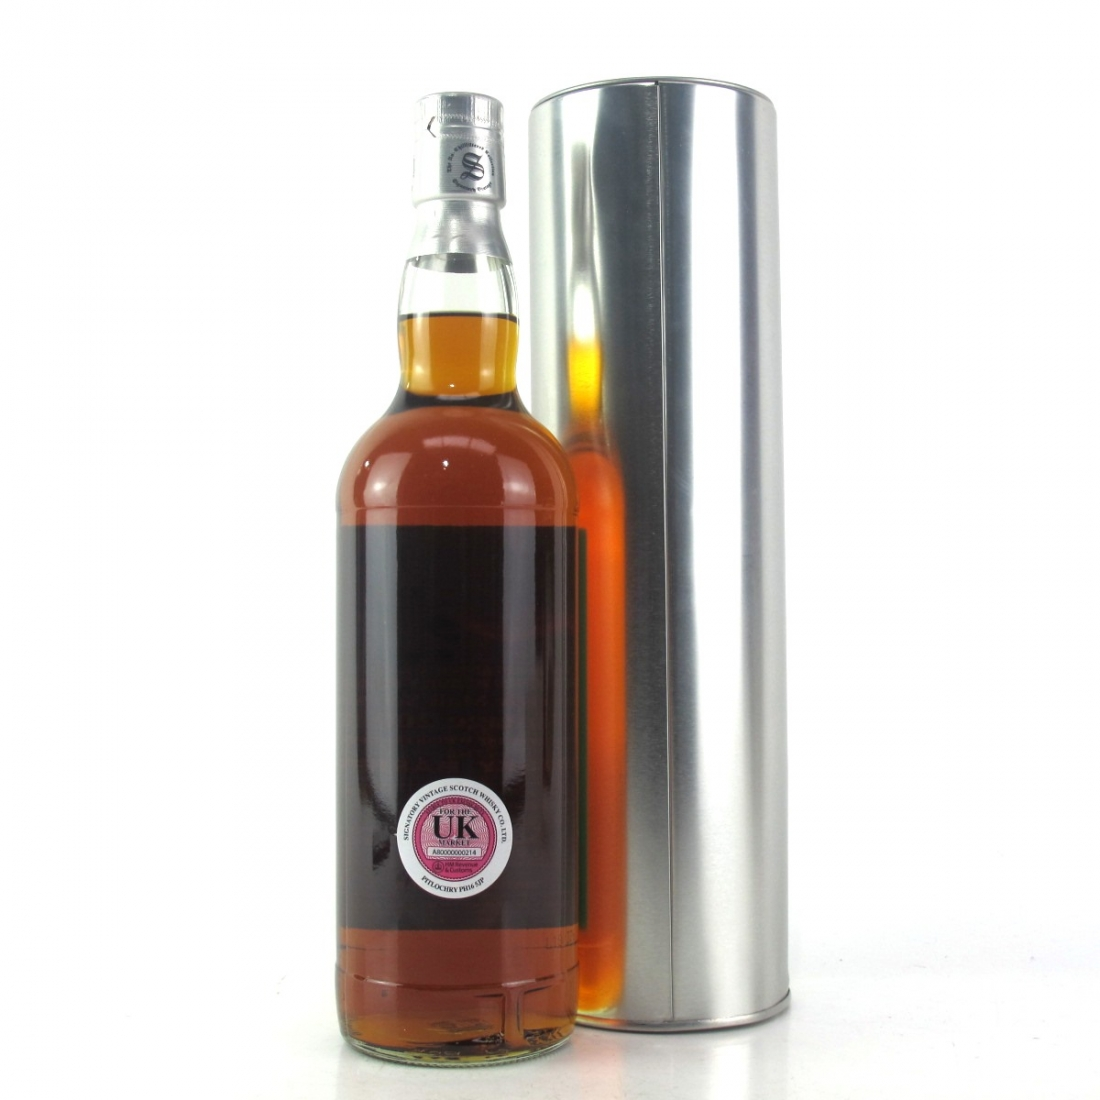 Edradour / Ballechin 2005 Signatory Vintage 12 Year Old / The Whisky Barrel